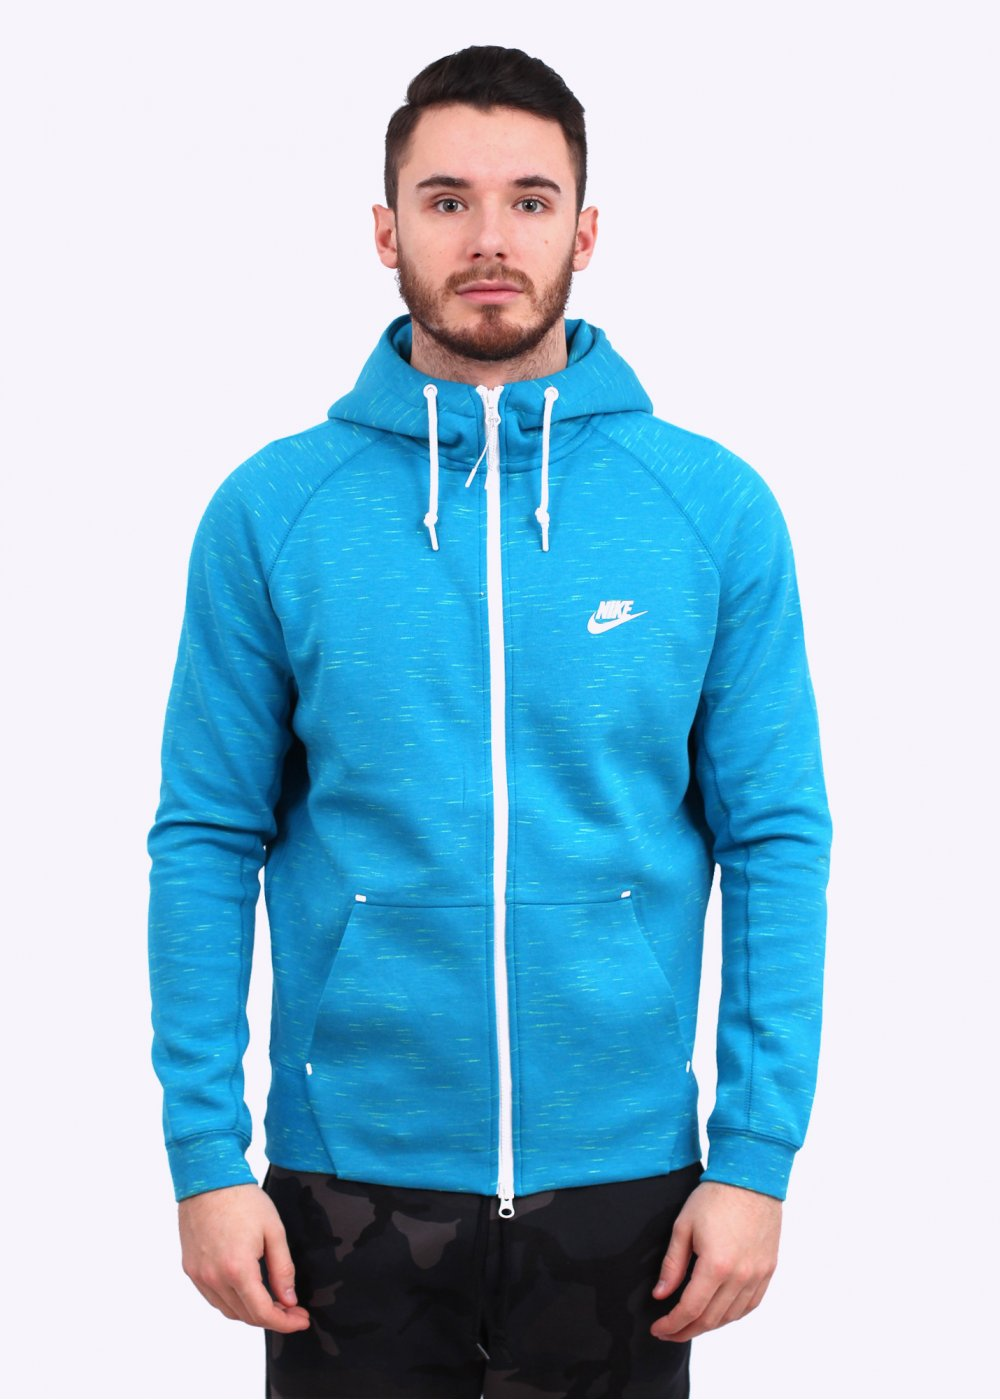 xflavismo.ga offers Blue Fleece Hoodie at cheap prices, so you can shop from a huge selection of Blue Fleece Hoodie, FREE Shipping available worldwide.